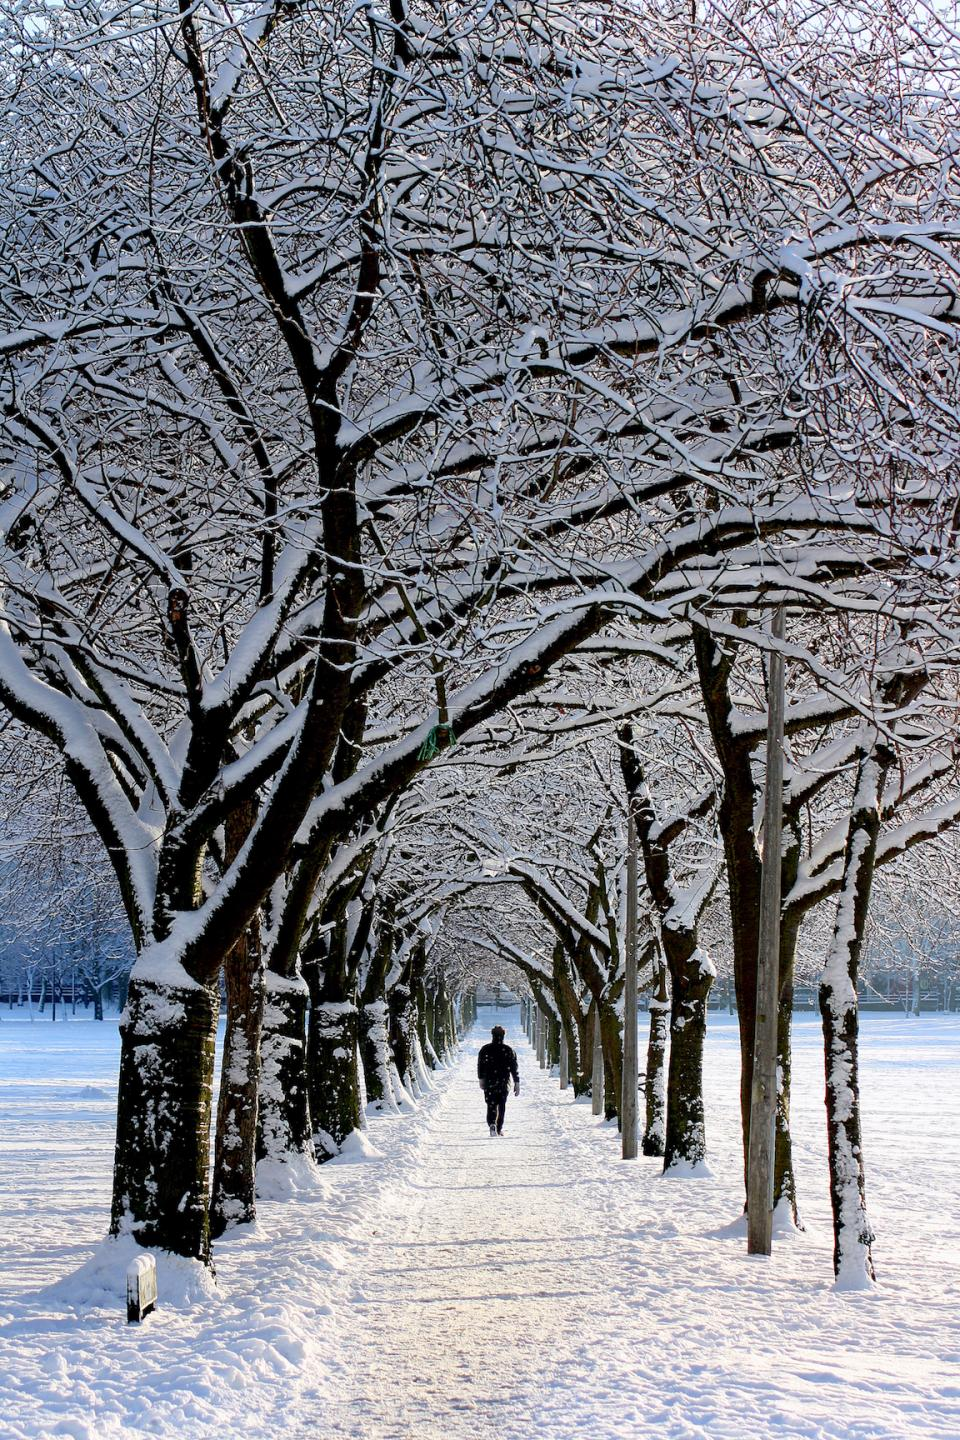 nature snow winter trees people man guy walking white